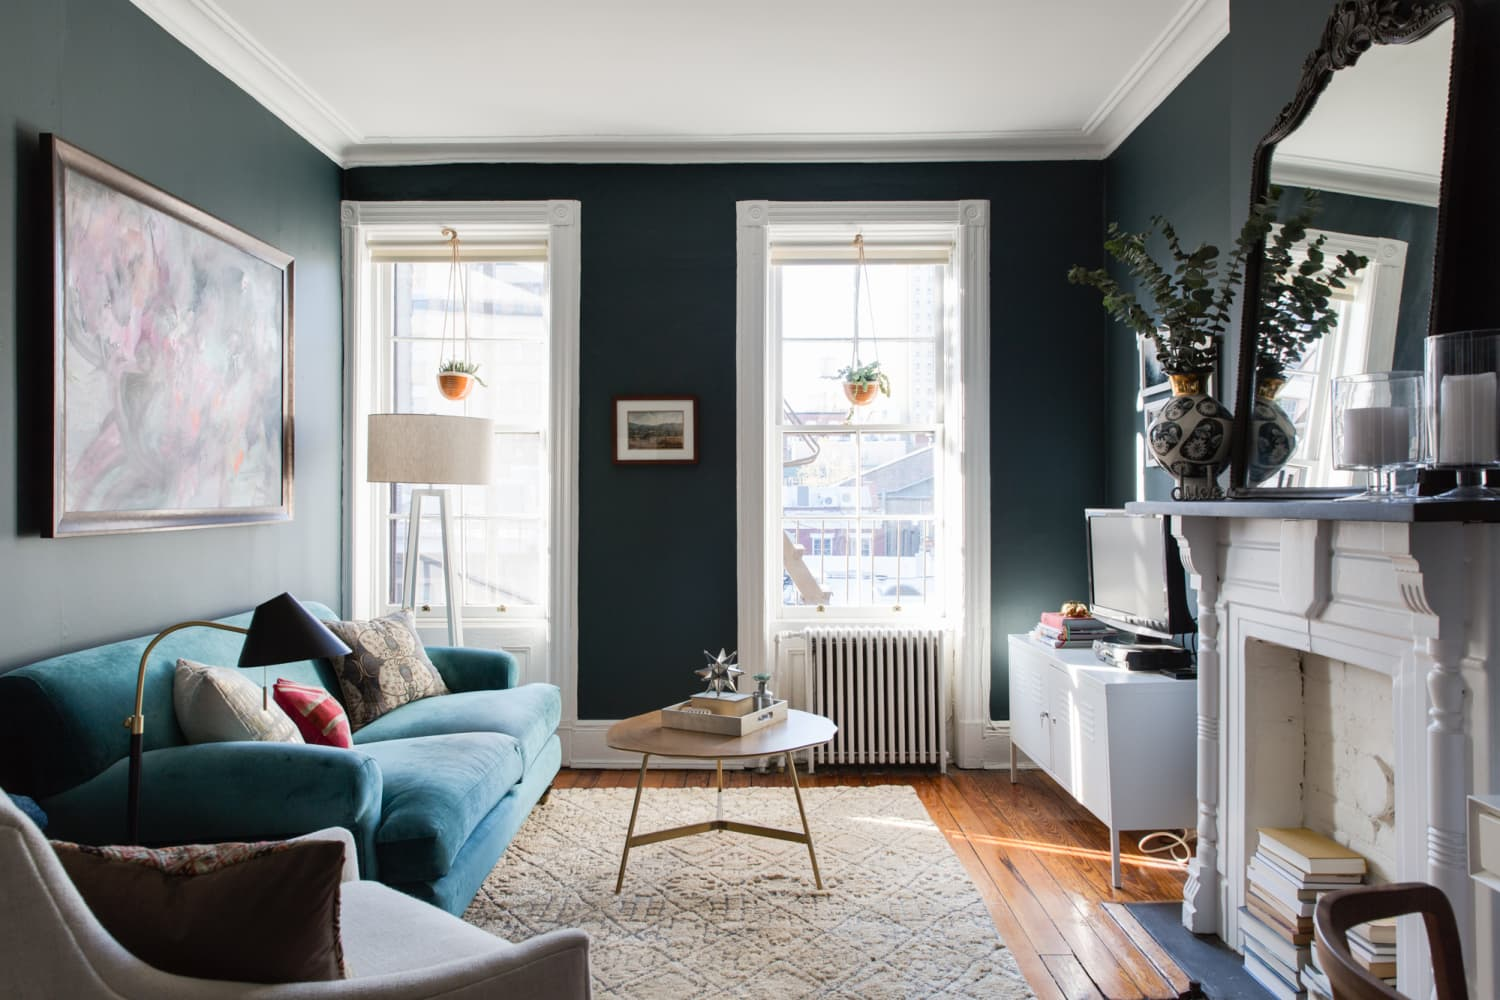 6 Tried-and-True Ways to Soundproof a Room, Even as a Renter